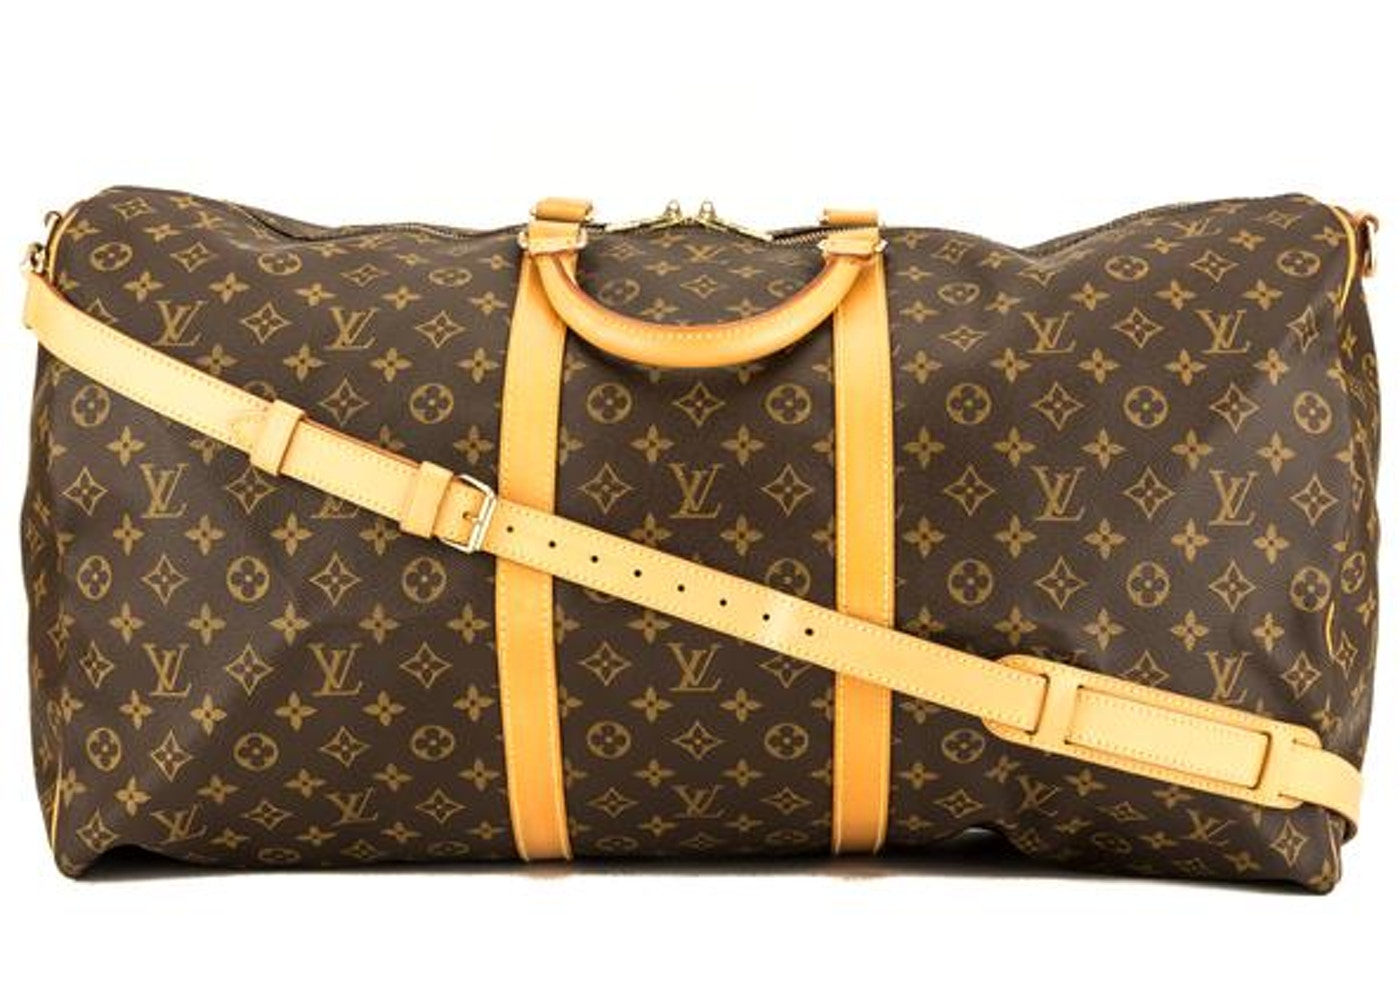 30efc575551 Louis Vuitton Keepall Bandouliere Monogram (Without Accessories ...